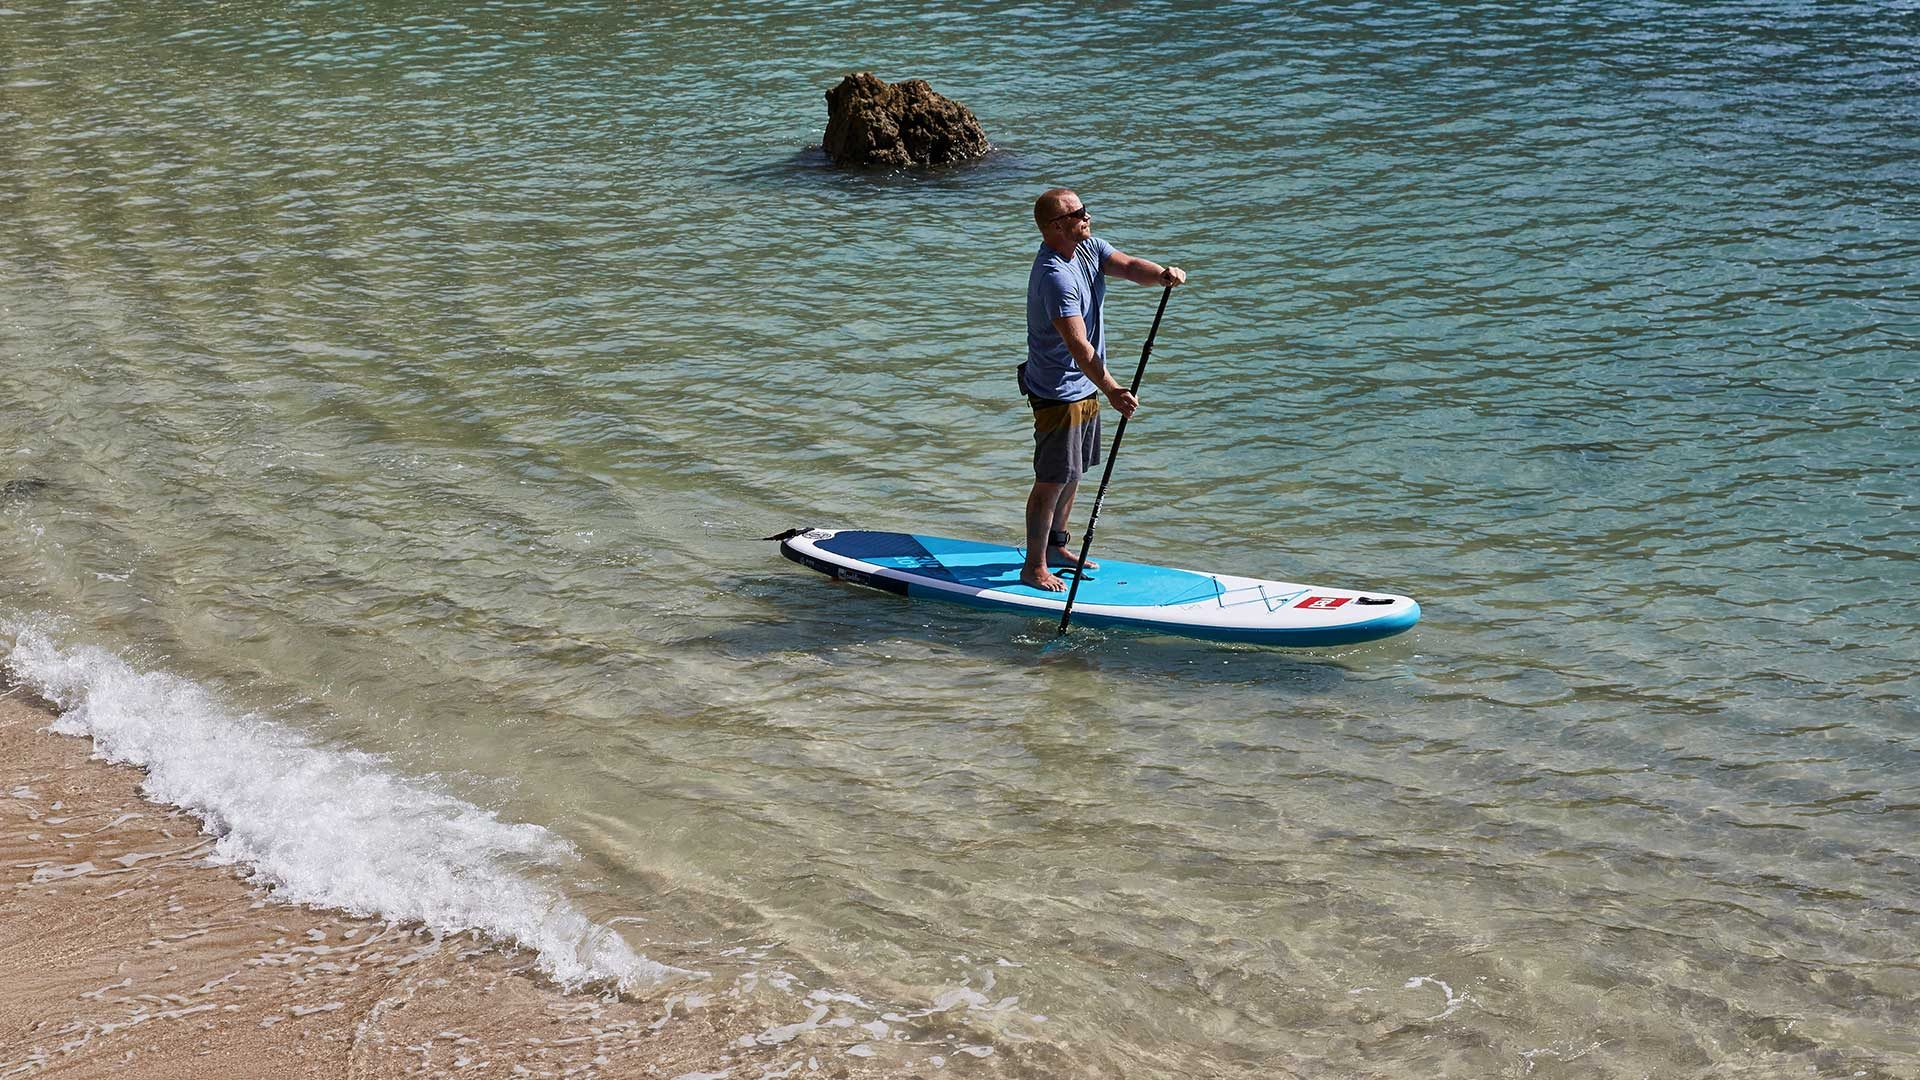 redpaddleco-108-ride-msl-inflatable-paddle-board-desktop-gallery-2